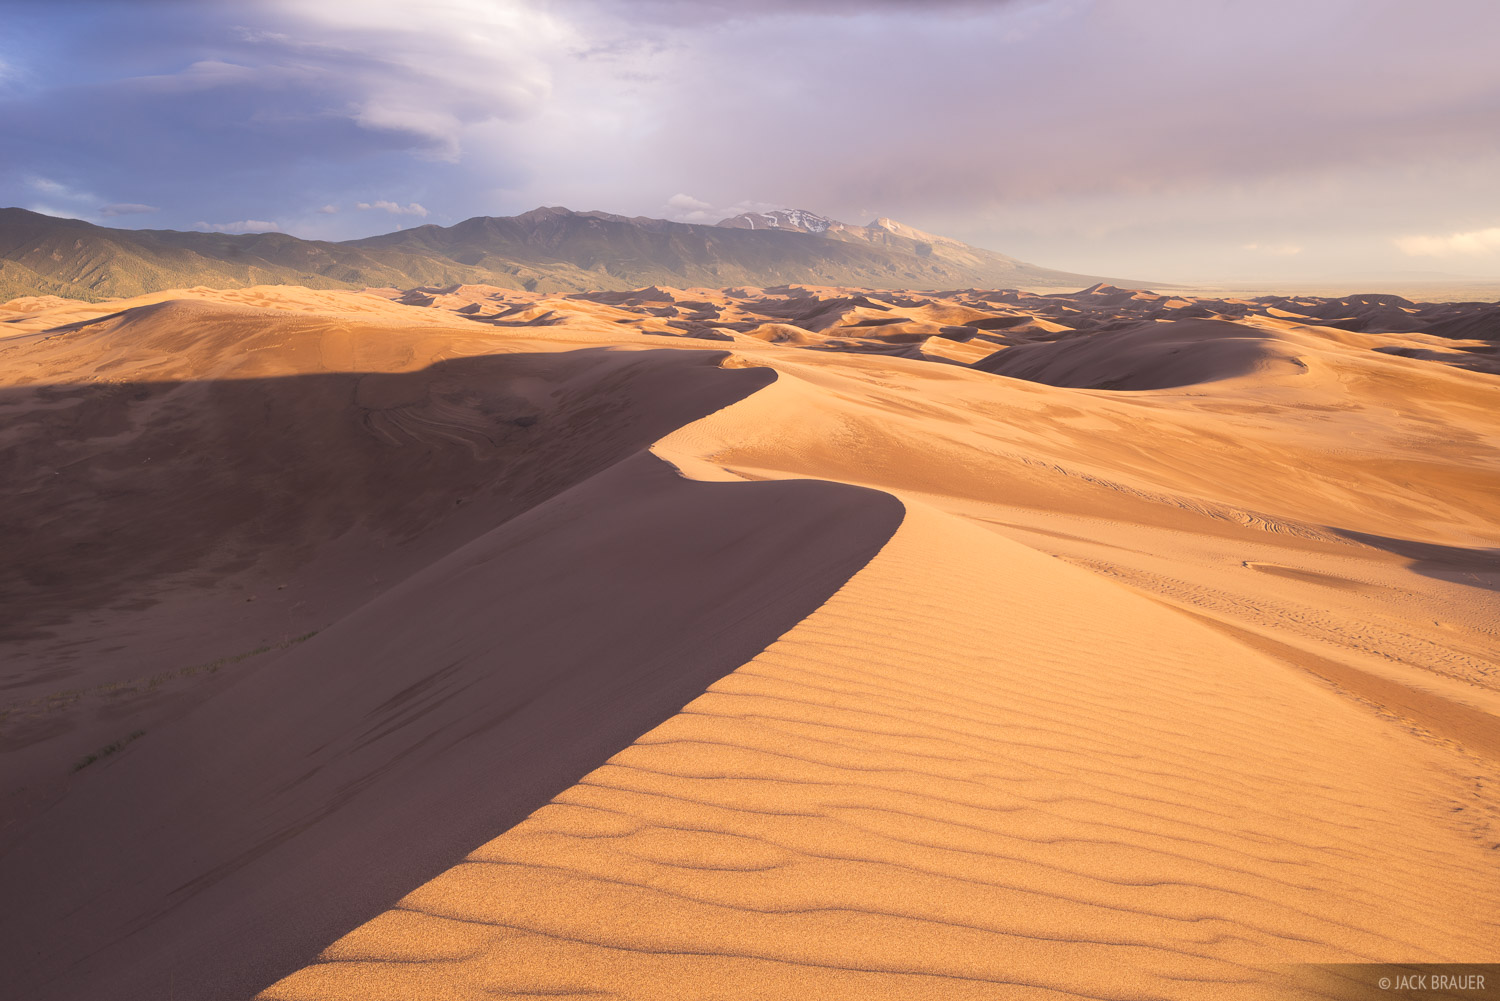 Sunset in the northern end of the Great Sand Dunes.